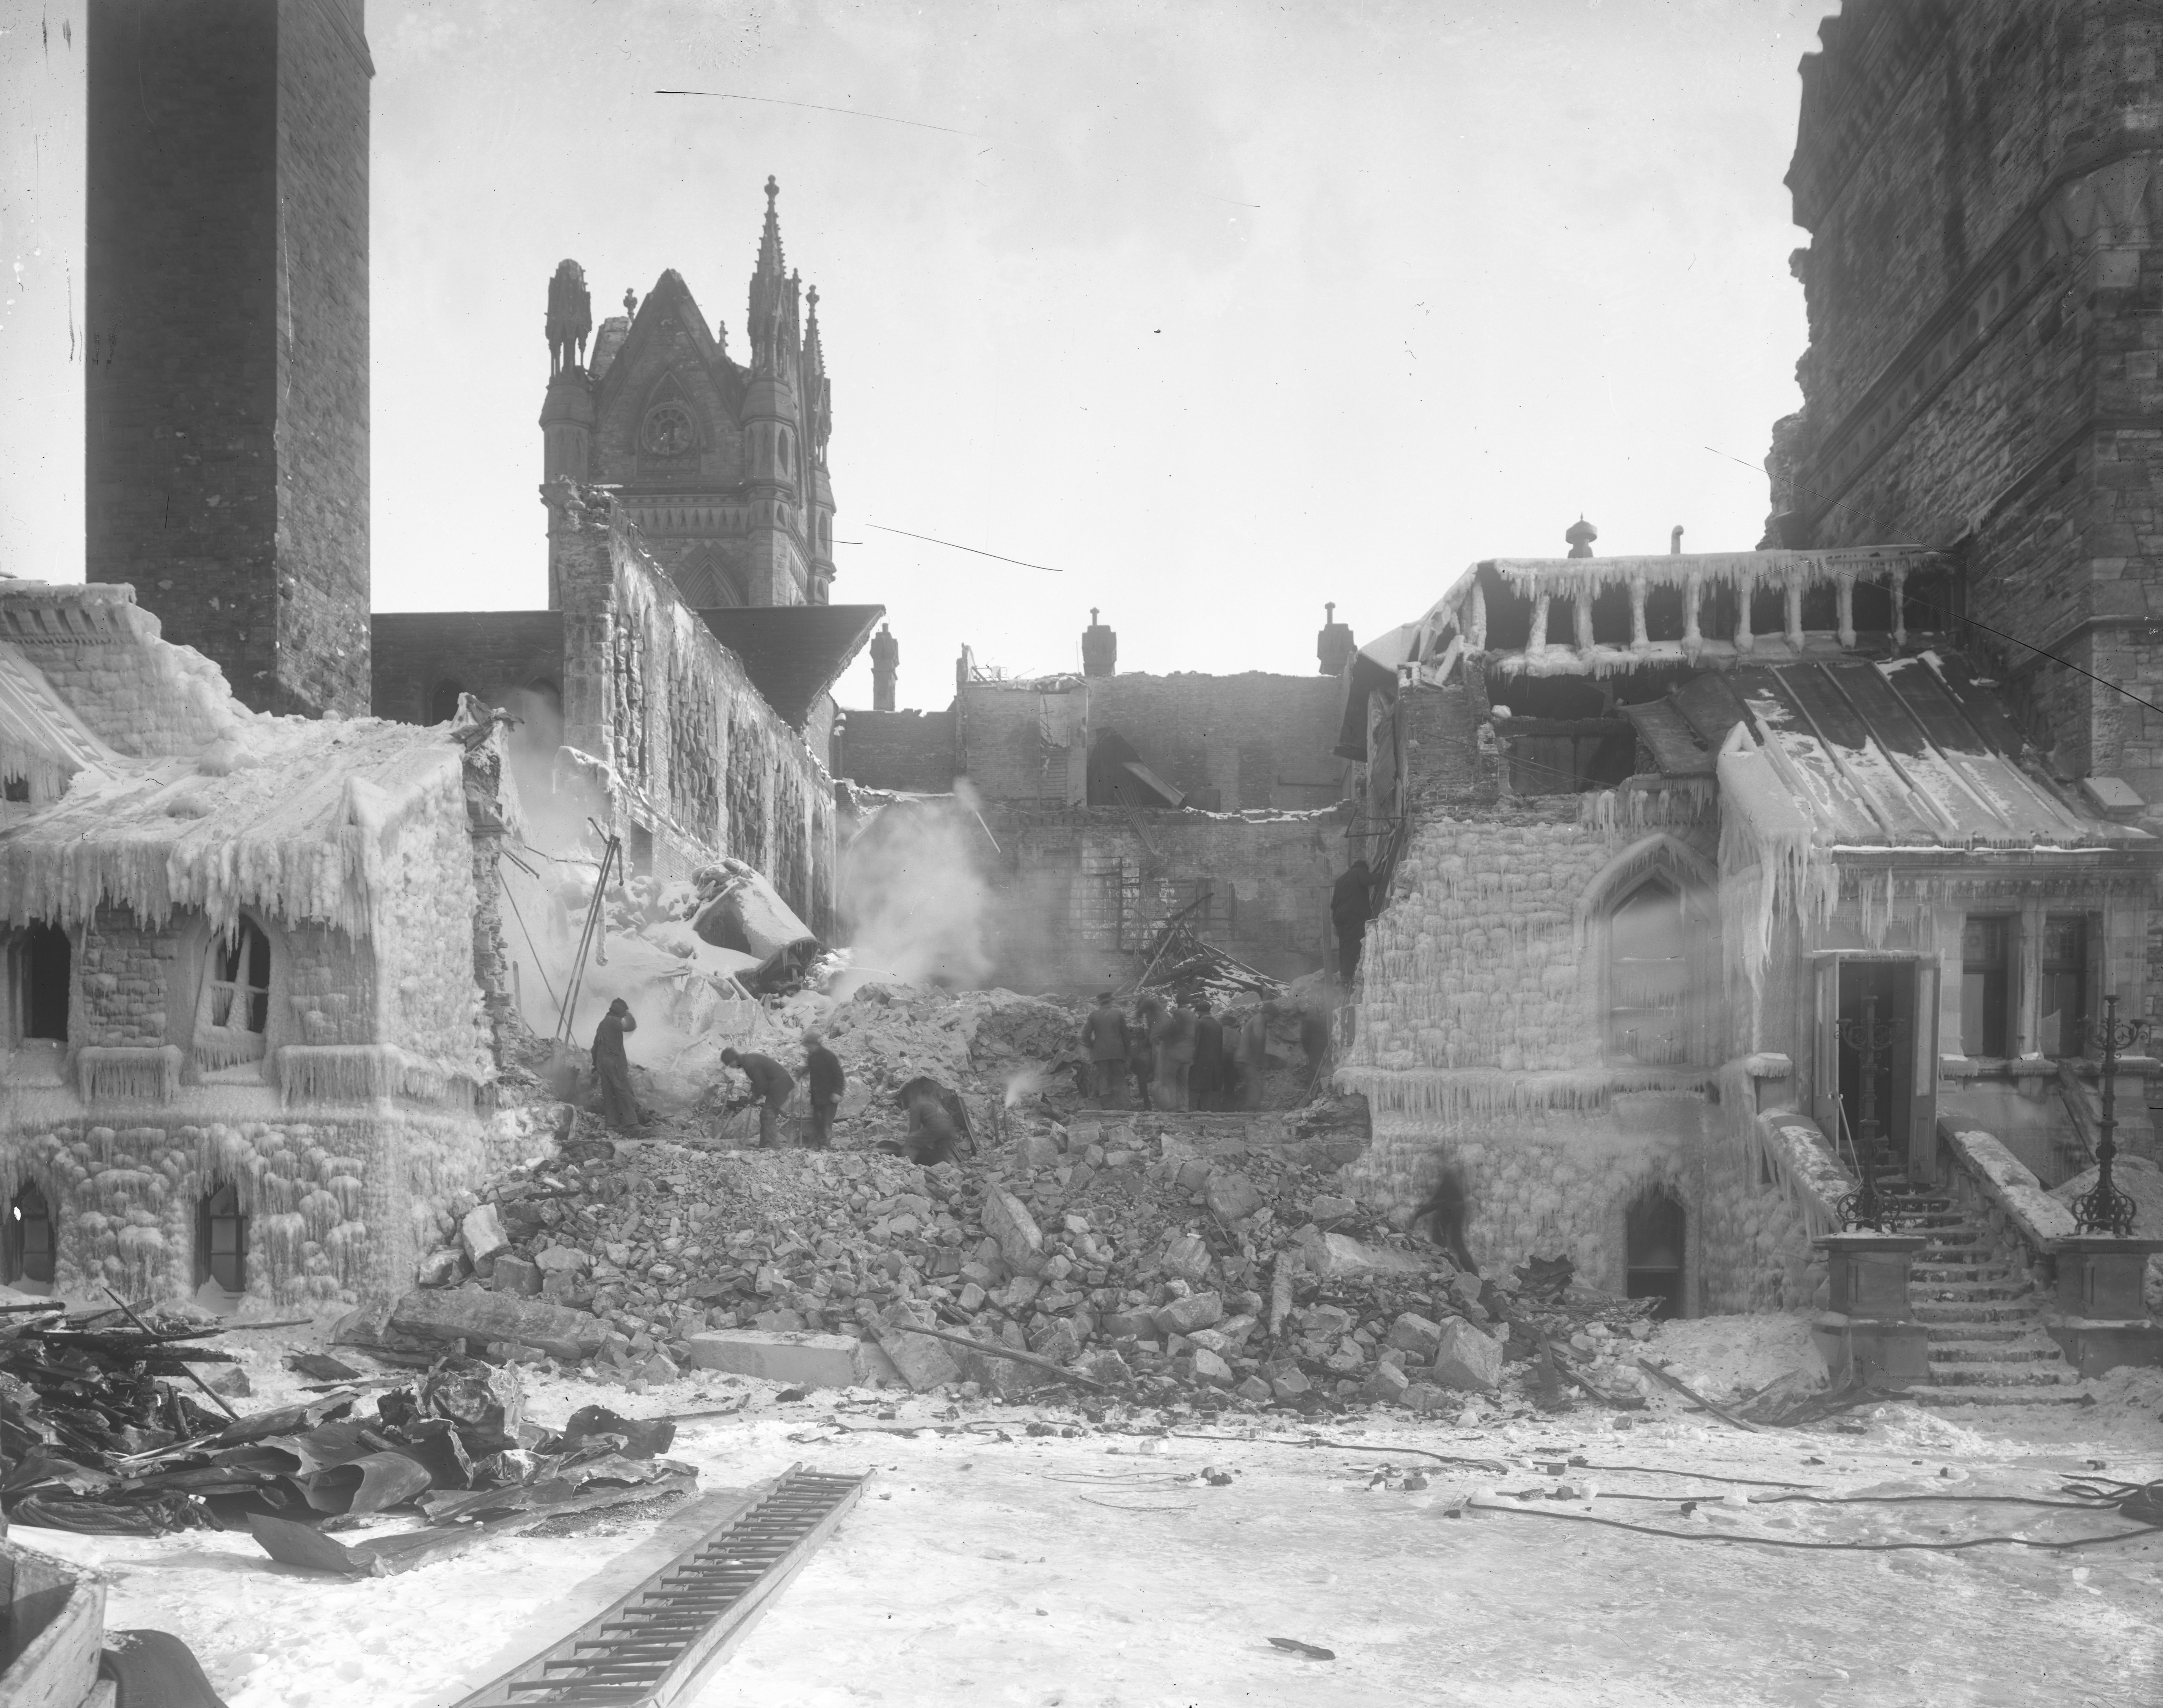 A photo of rubble from the Parliament Hill fire in black and white.